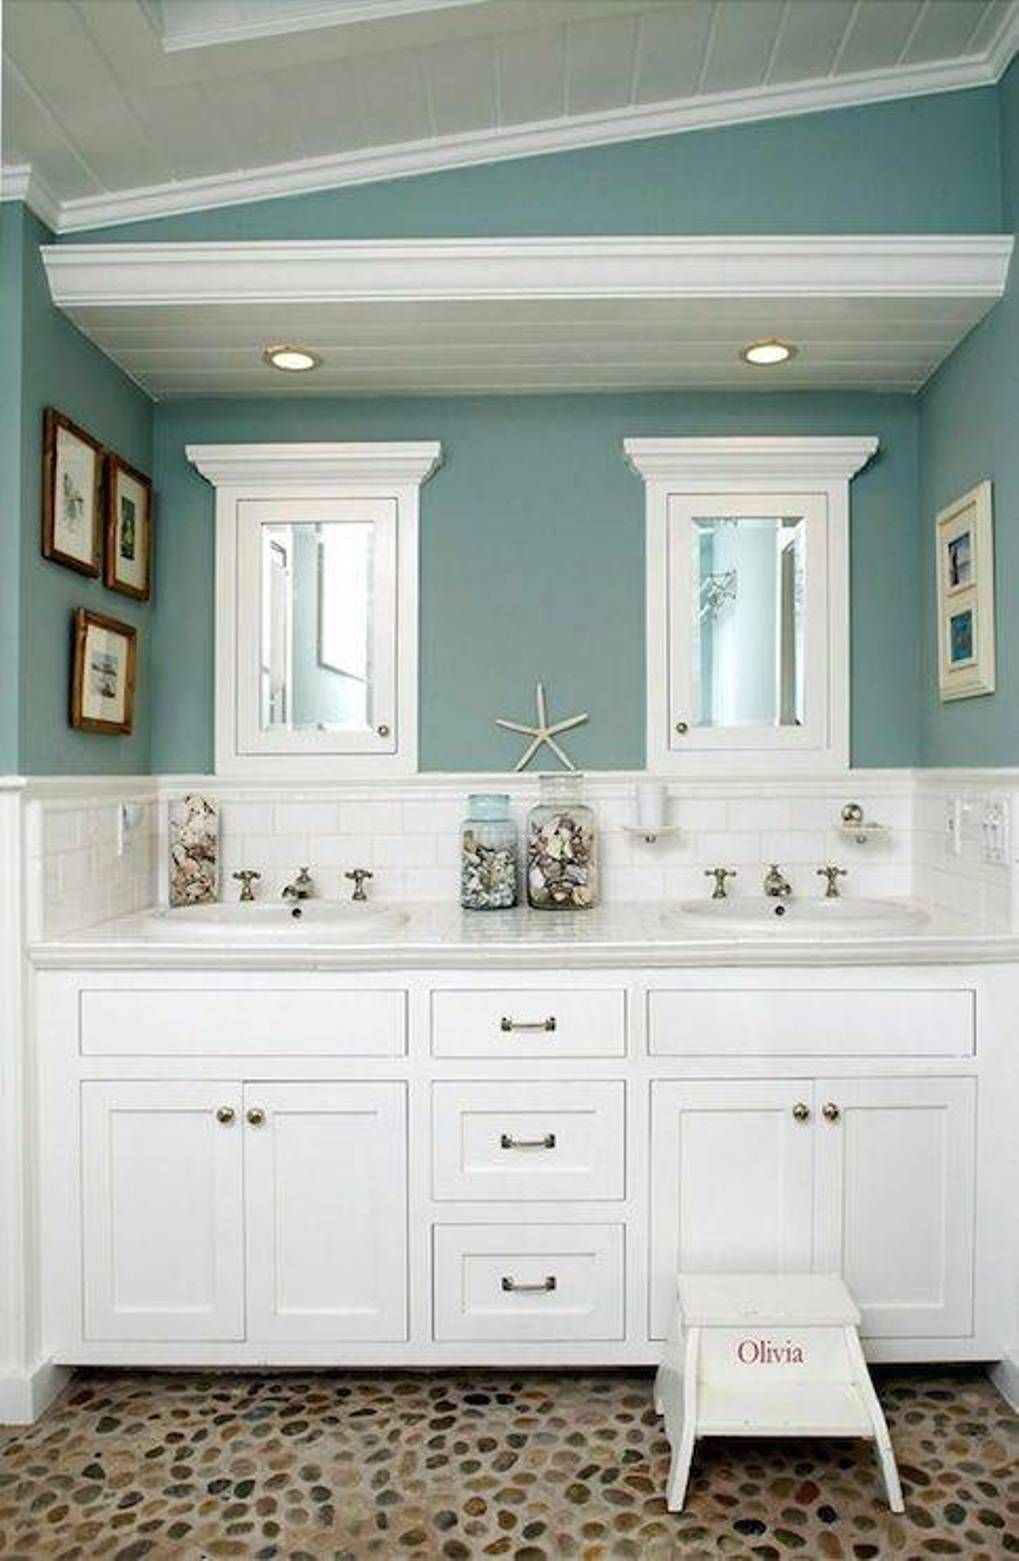 Bathroom , Timeless White Bathroom Vanity : White Bathroom Vanity With  Double Sinks And Faucets And - Bathroom , Timeless White Bathroom Vanity : White Bathroom Vanity